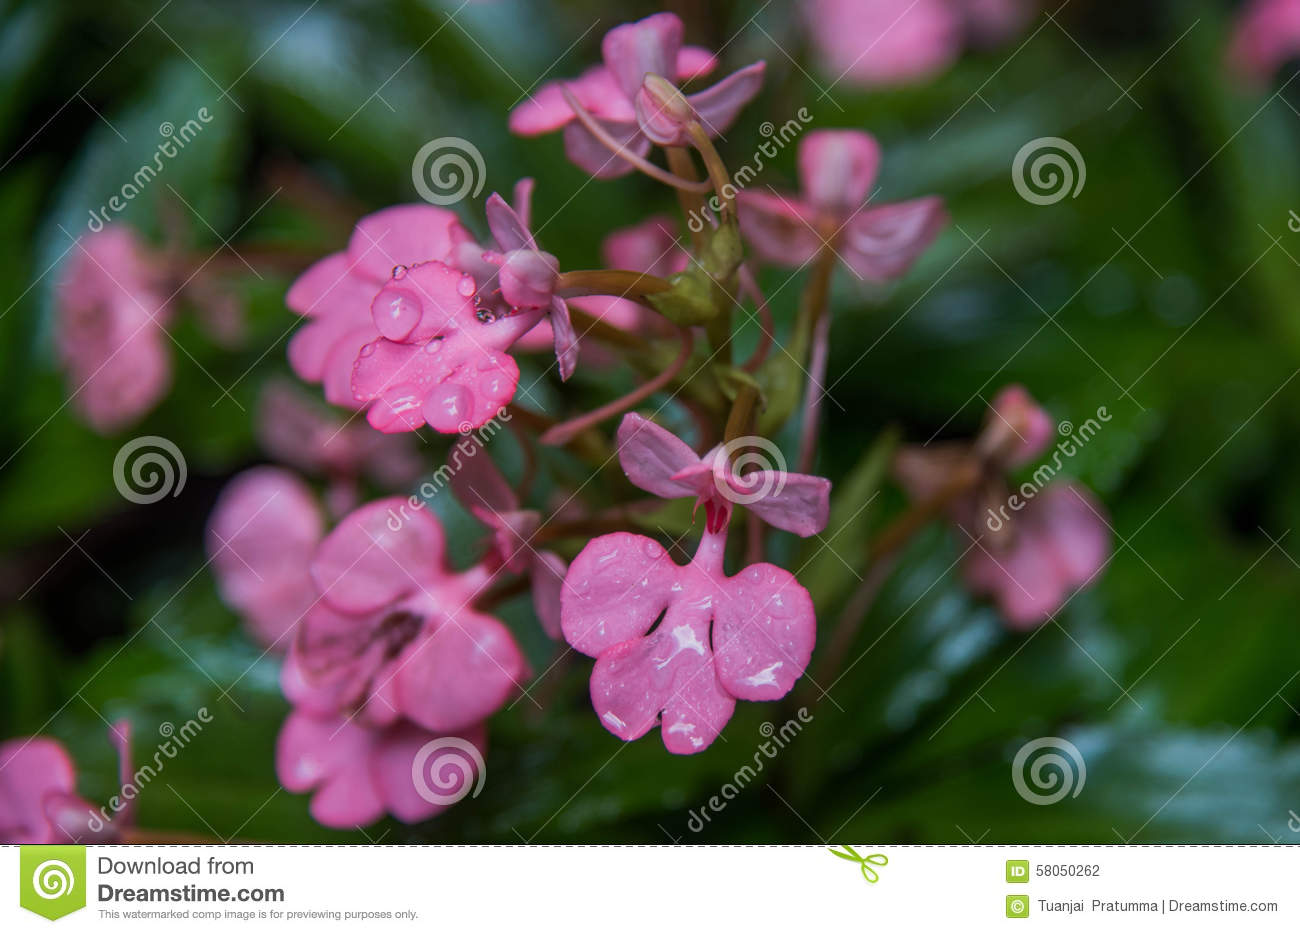 The Pink Lipped Habenaria Pink Snap Dragon Flower Found In Tro